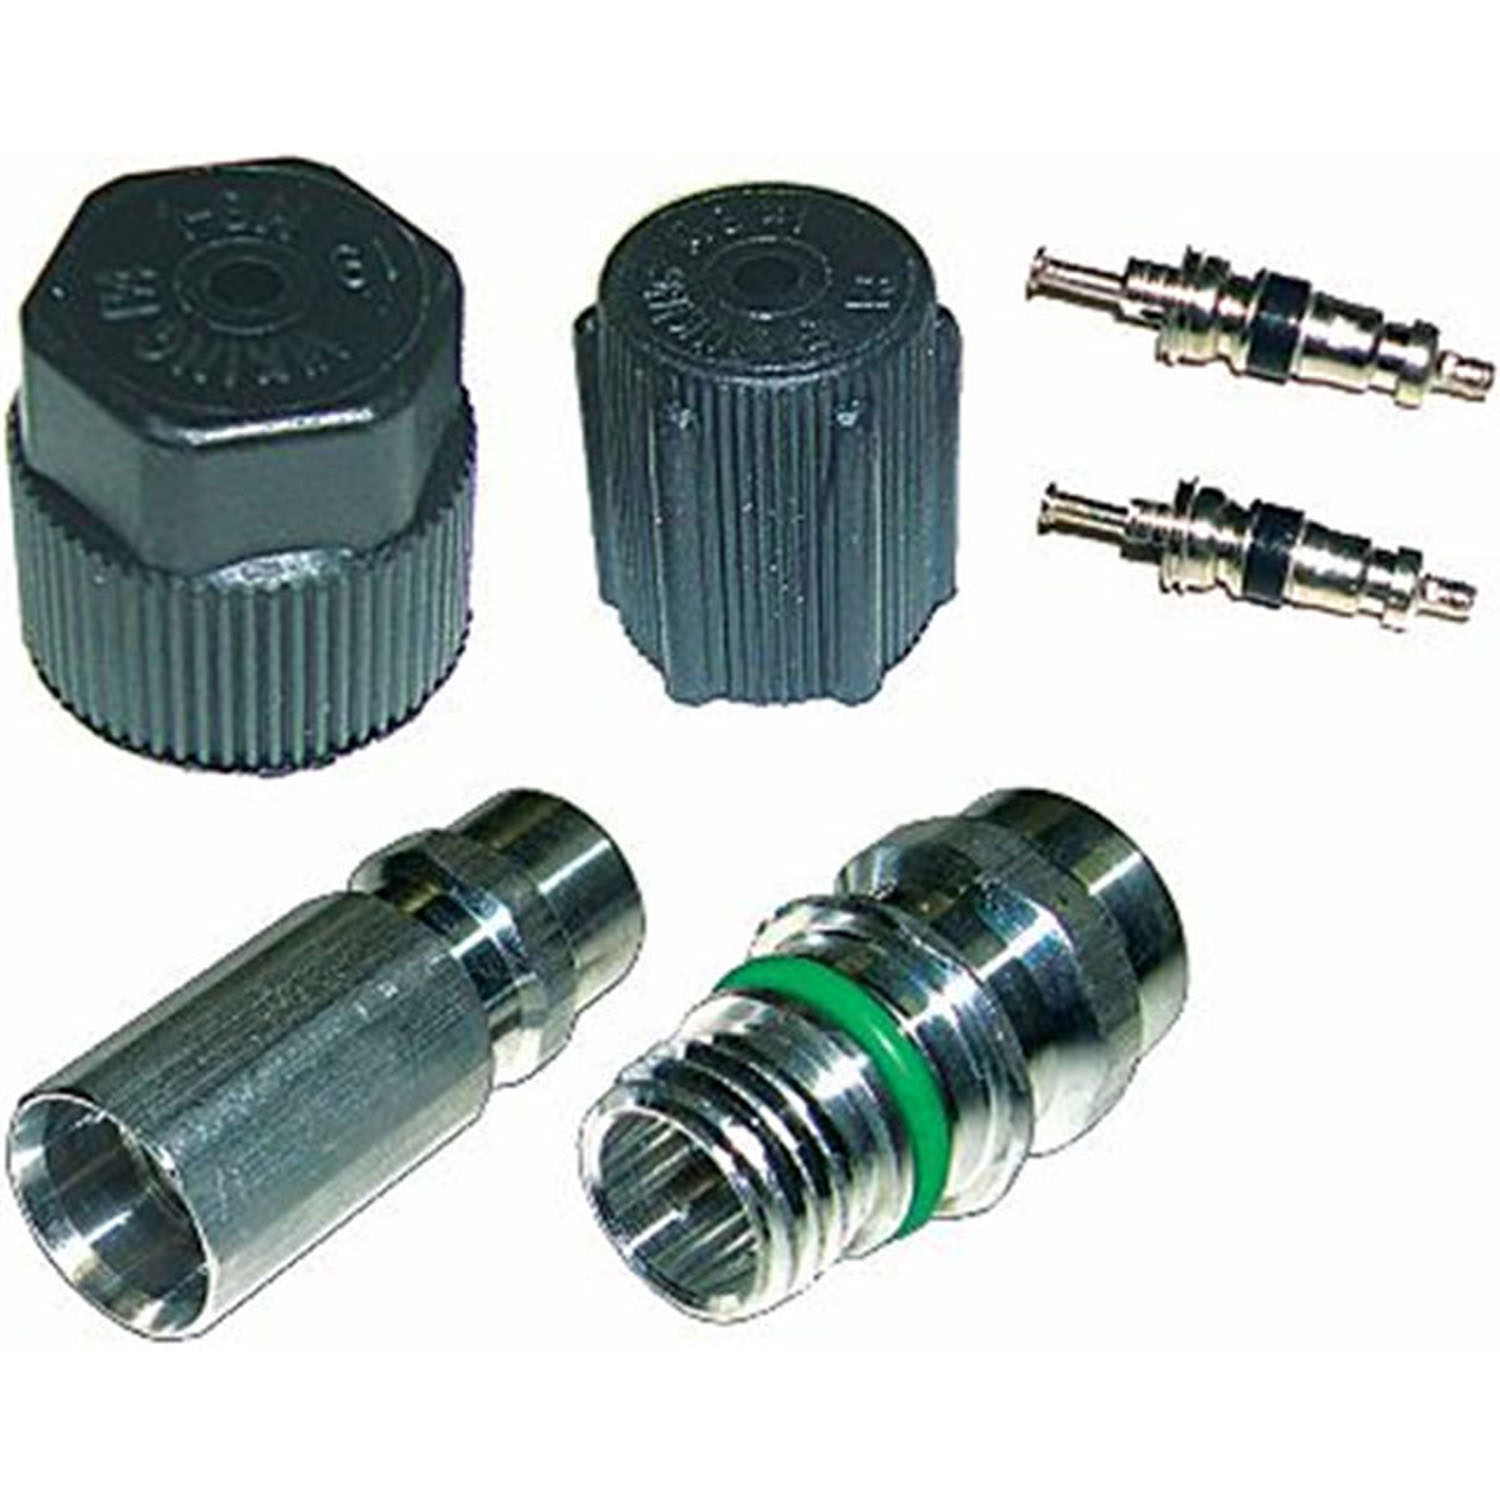 Valve and Cap Kit VC 2907